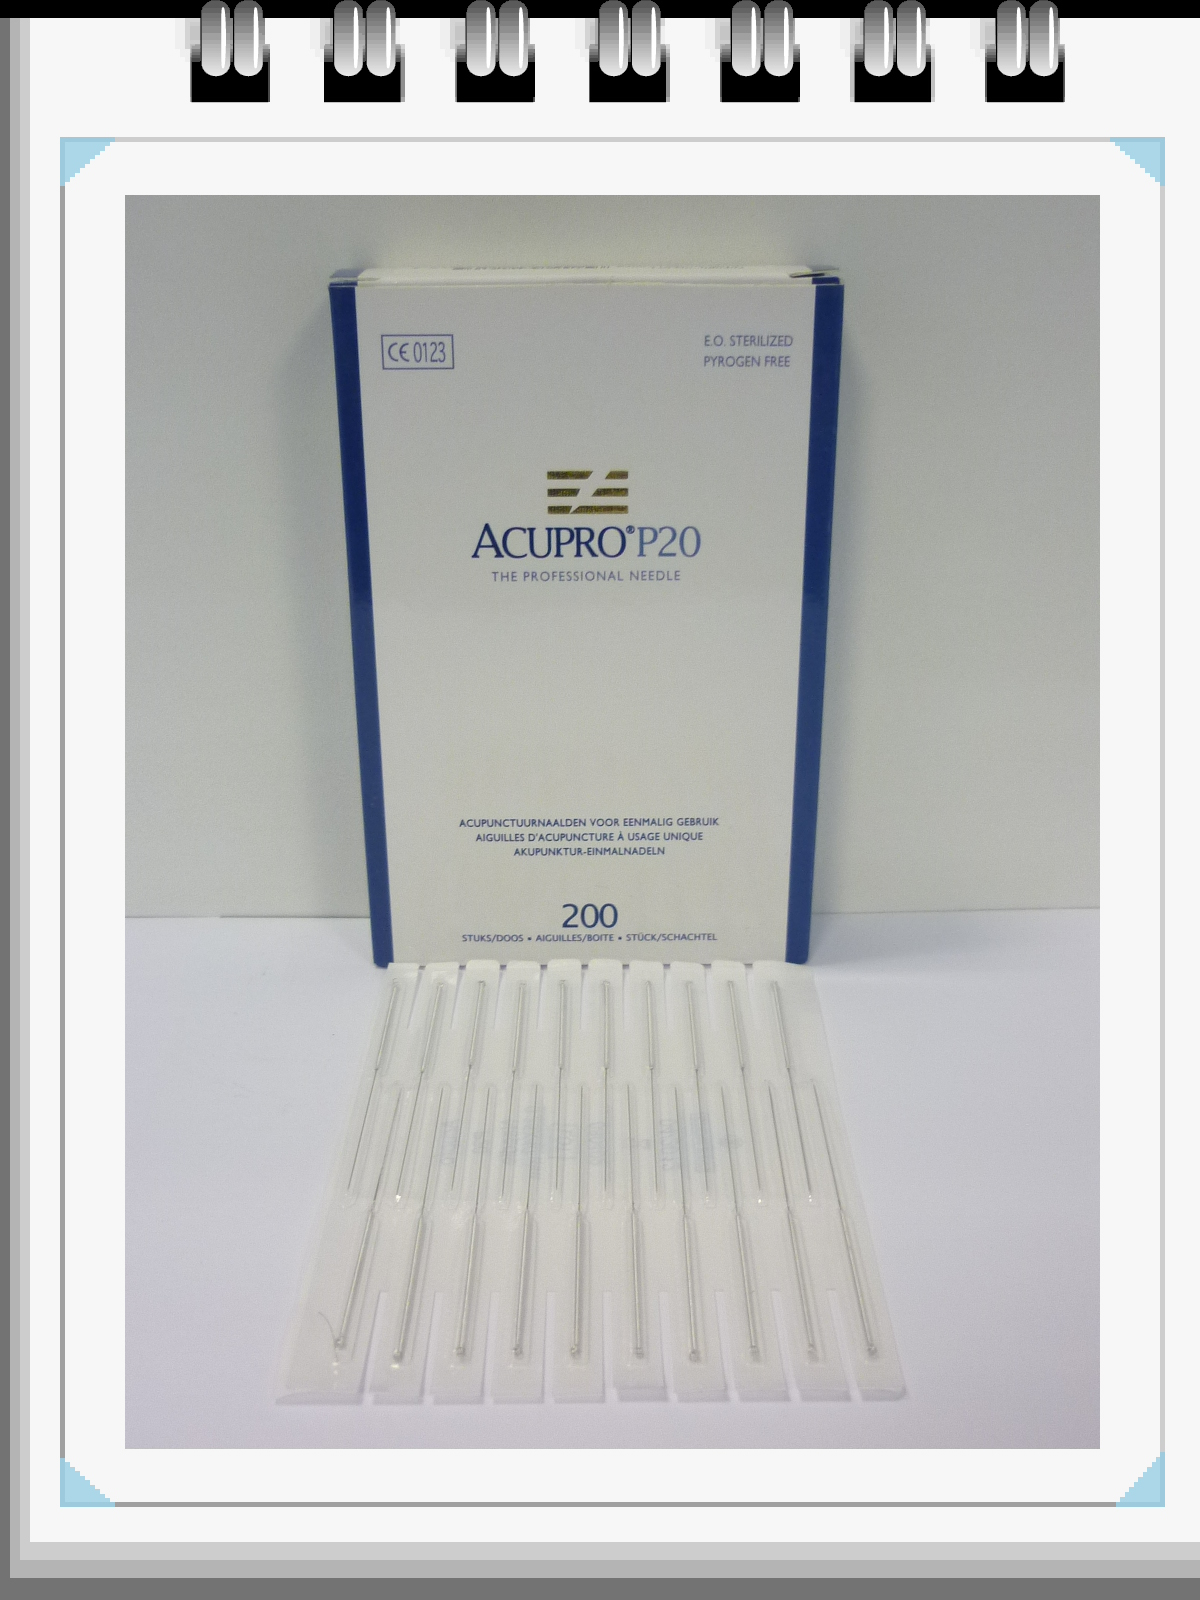 All Products - Acupunctuurnaalden 0,25 x 50mm per 200